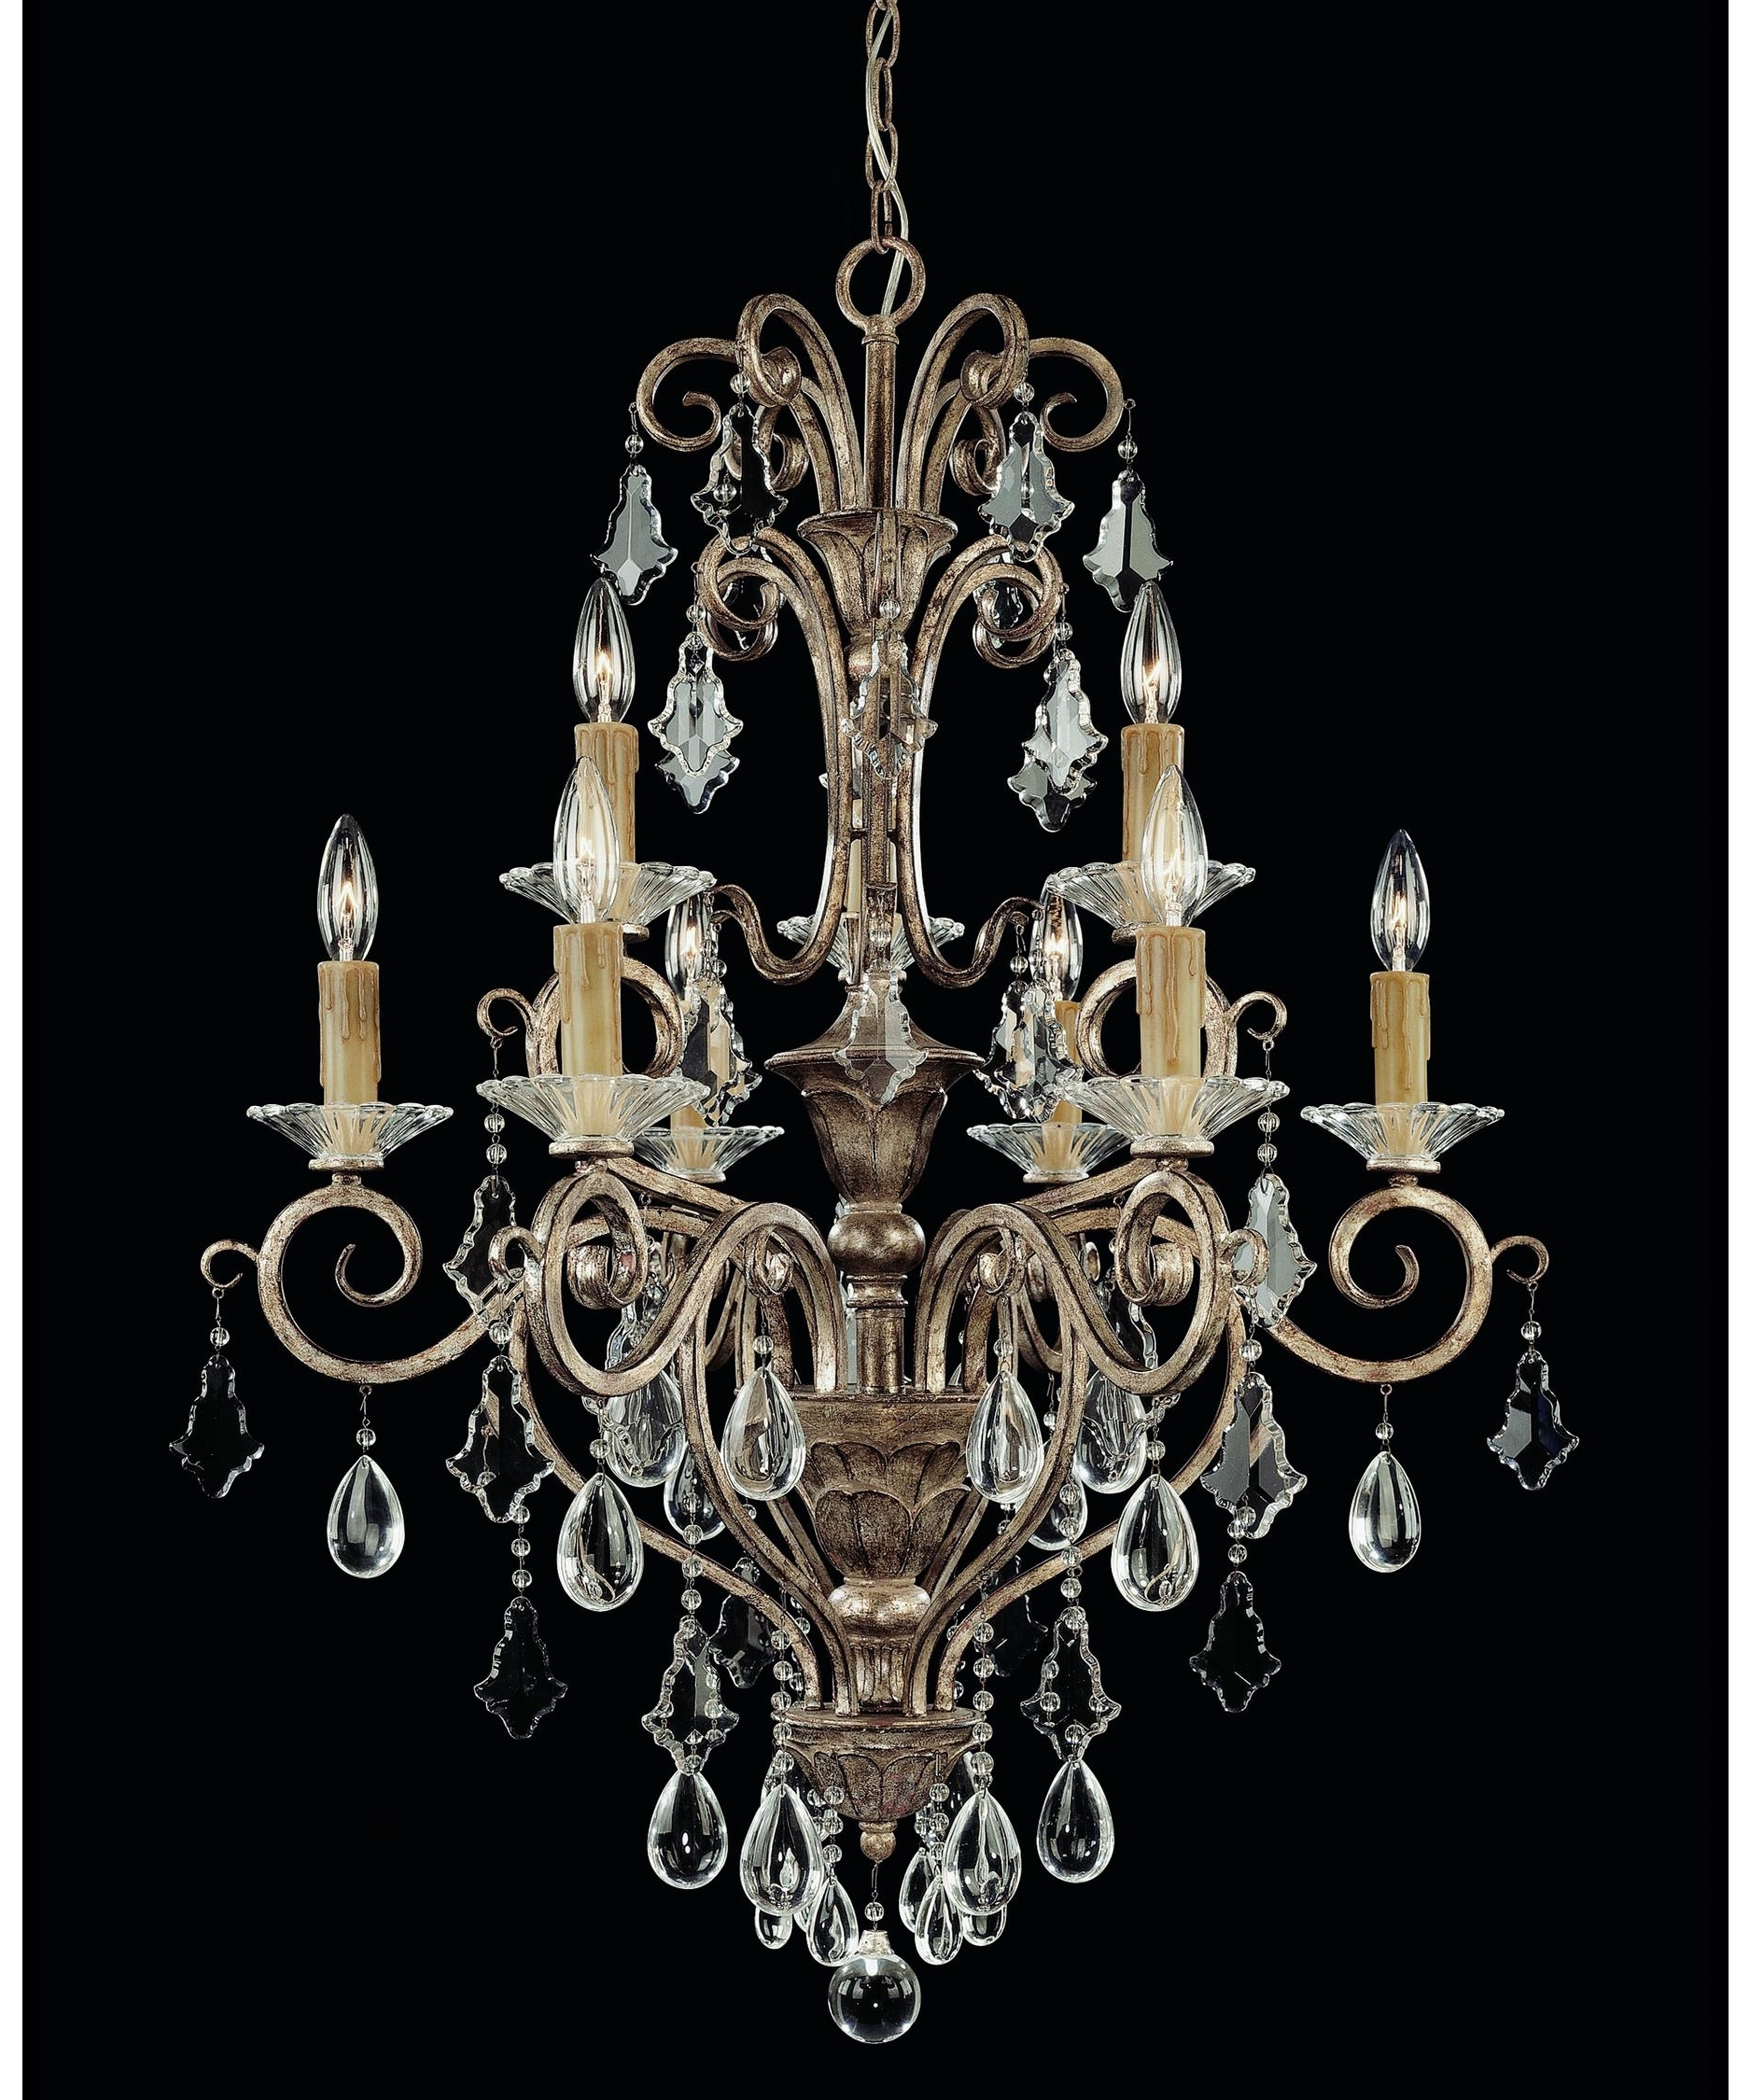 2017 Savoy House 1 1398 9 256 Antoinette 28 Inch Wide 9 Light Chandelier For Savoy House Chandeliers (View 1 of 15)